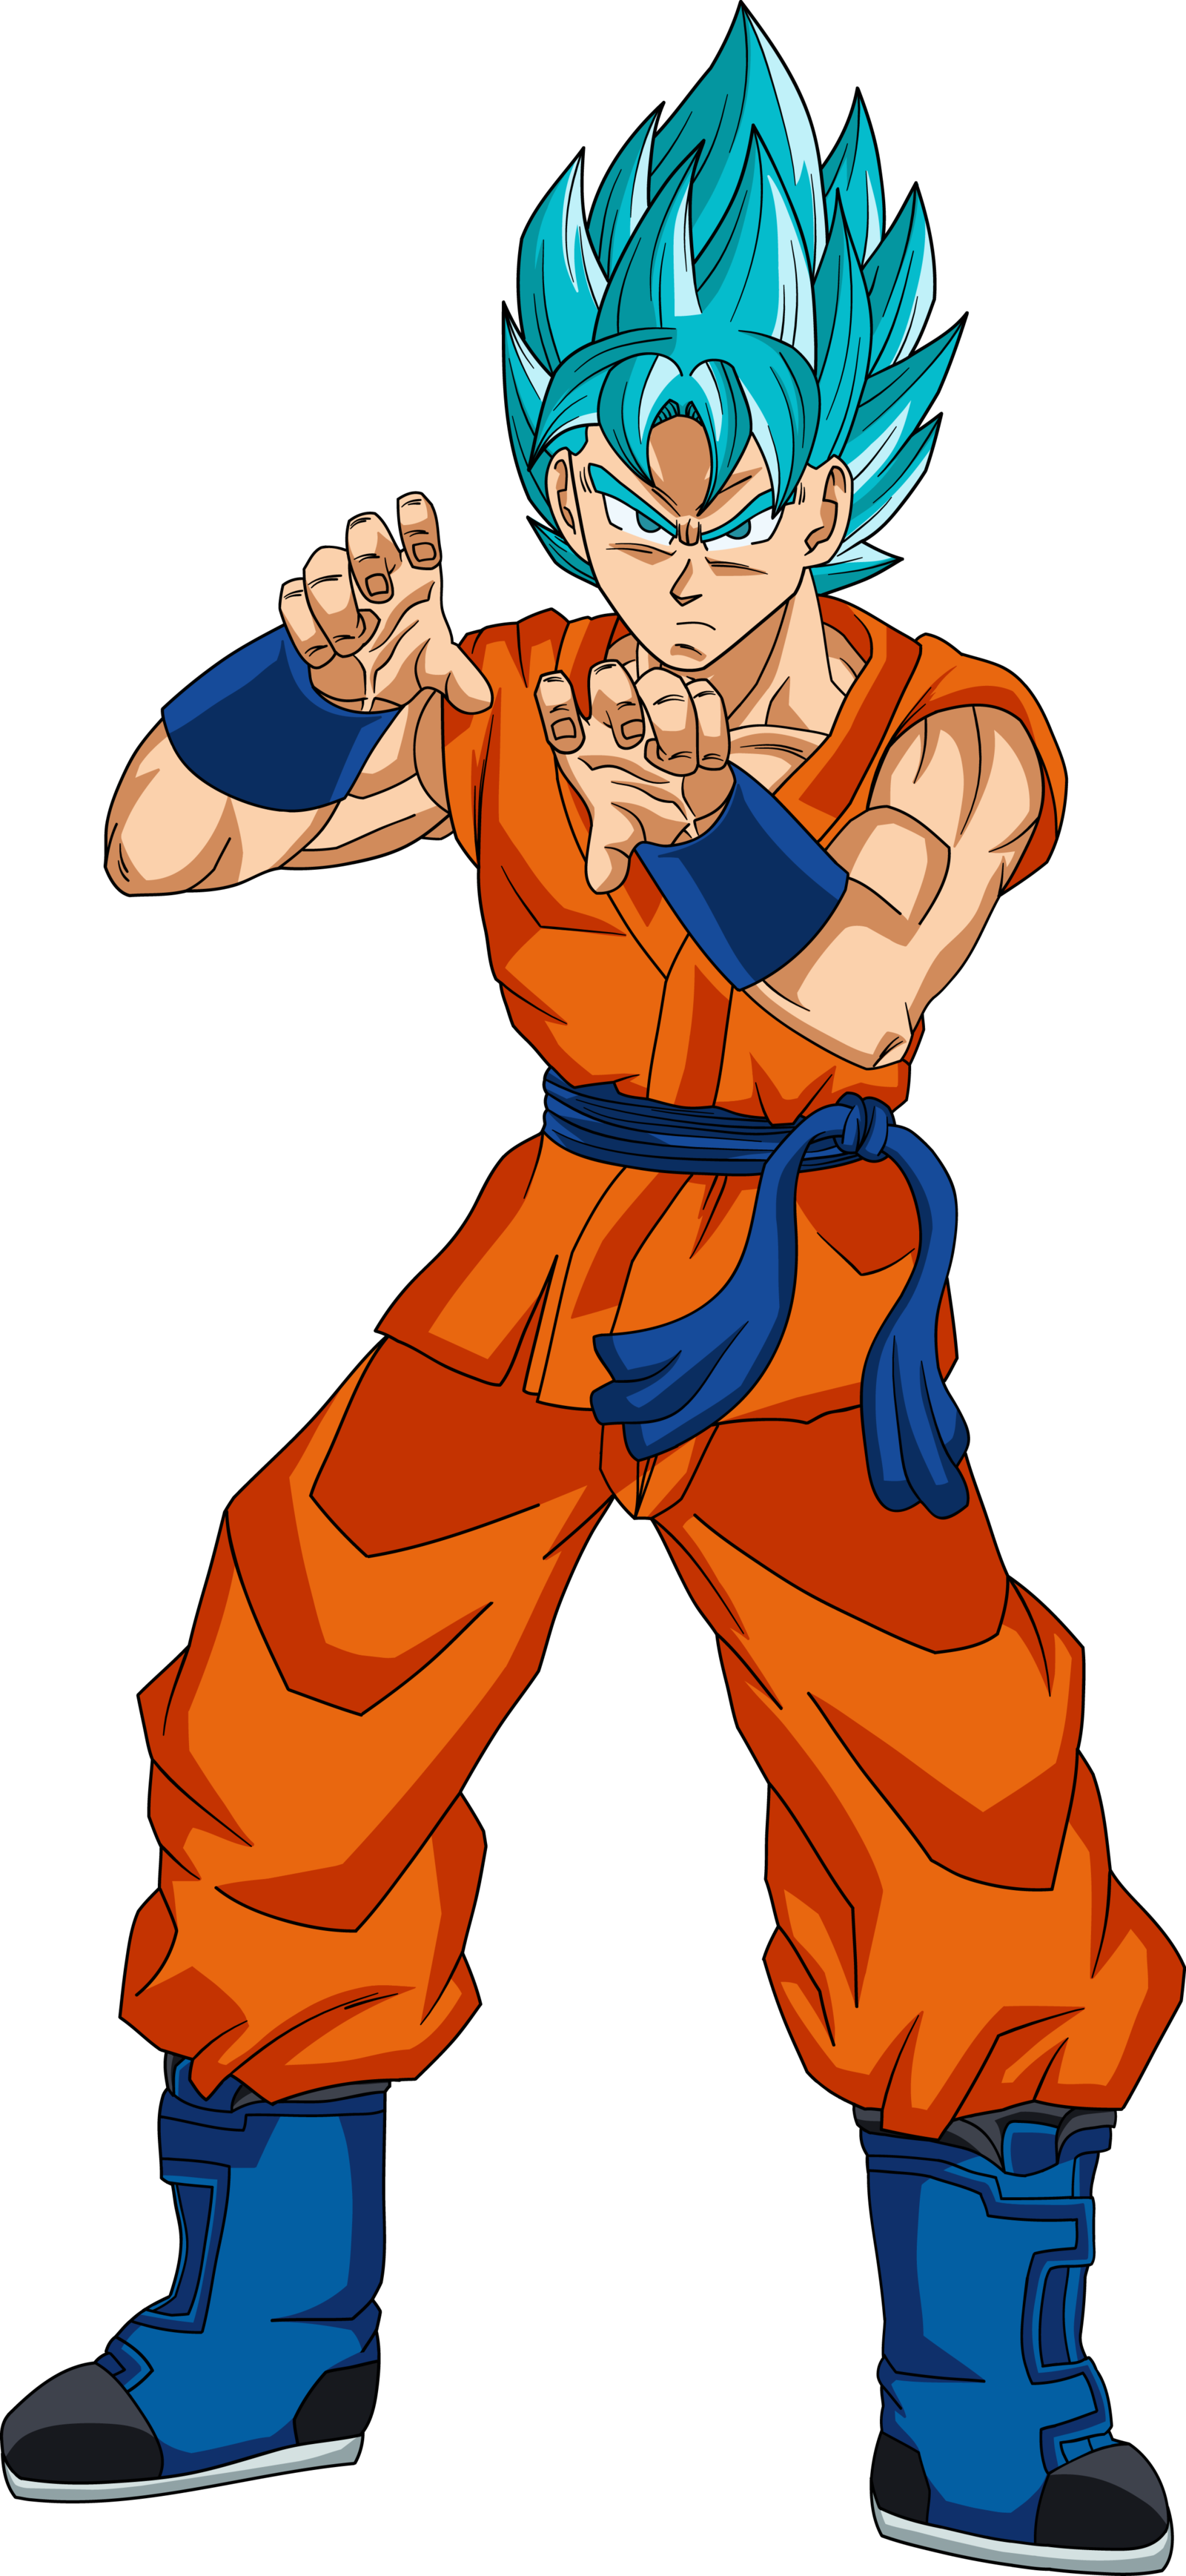 Crouching Drawing Fighting Poses Transparent Png Clipart Free